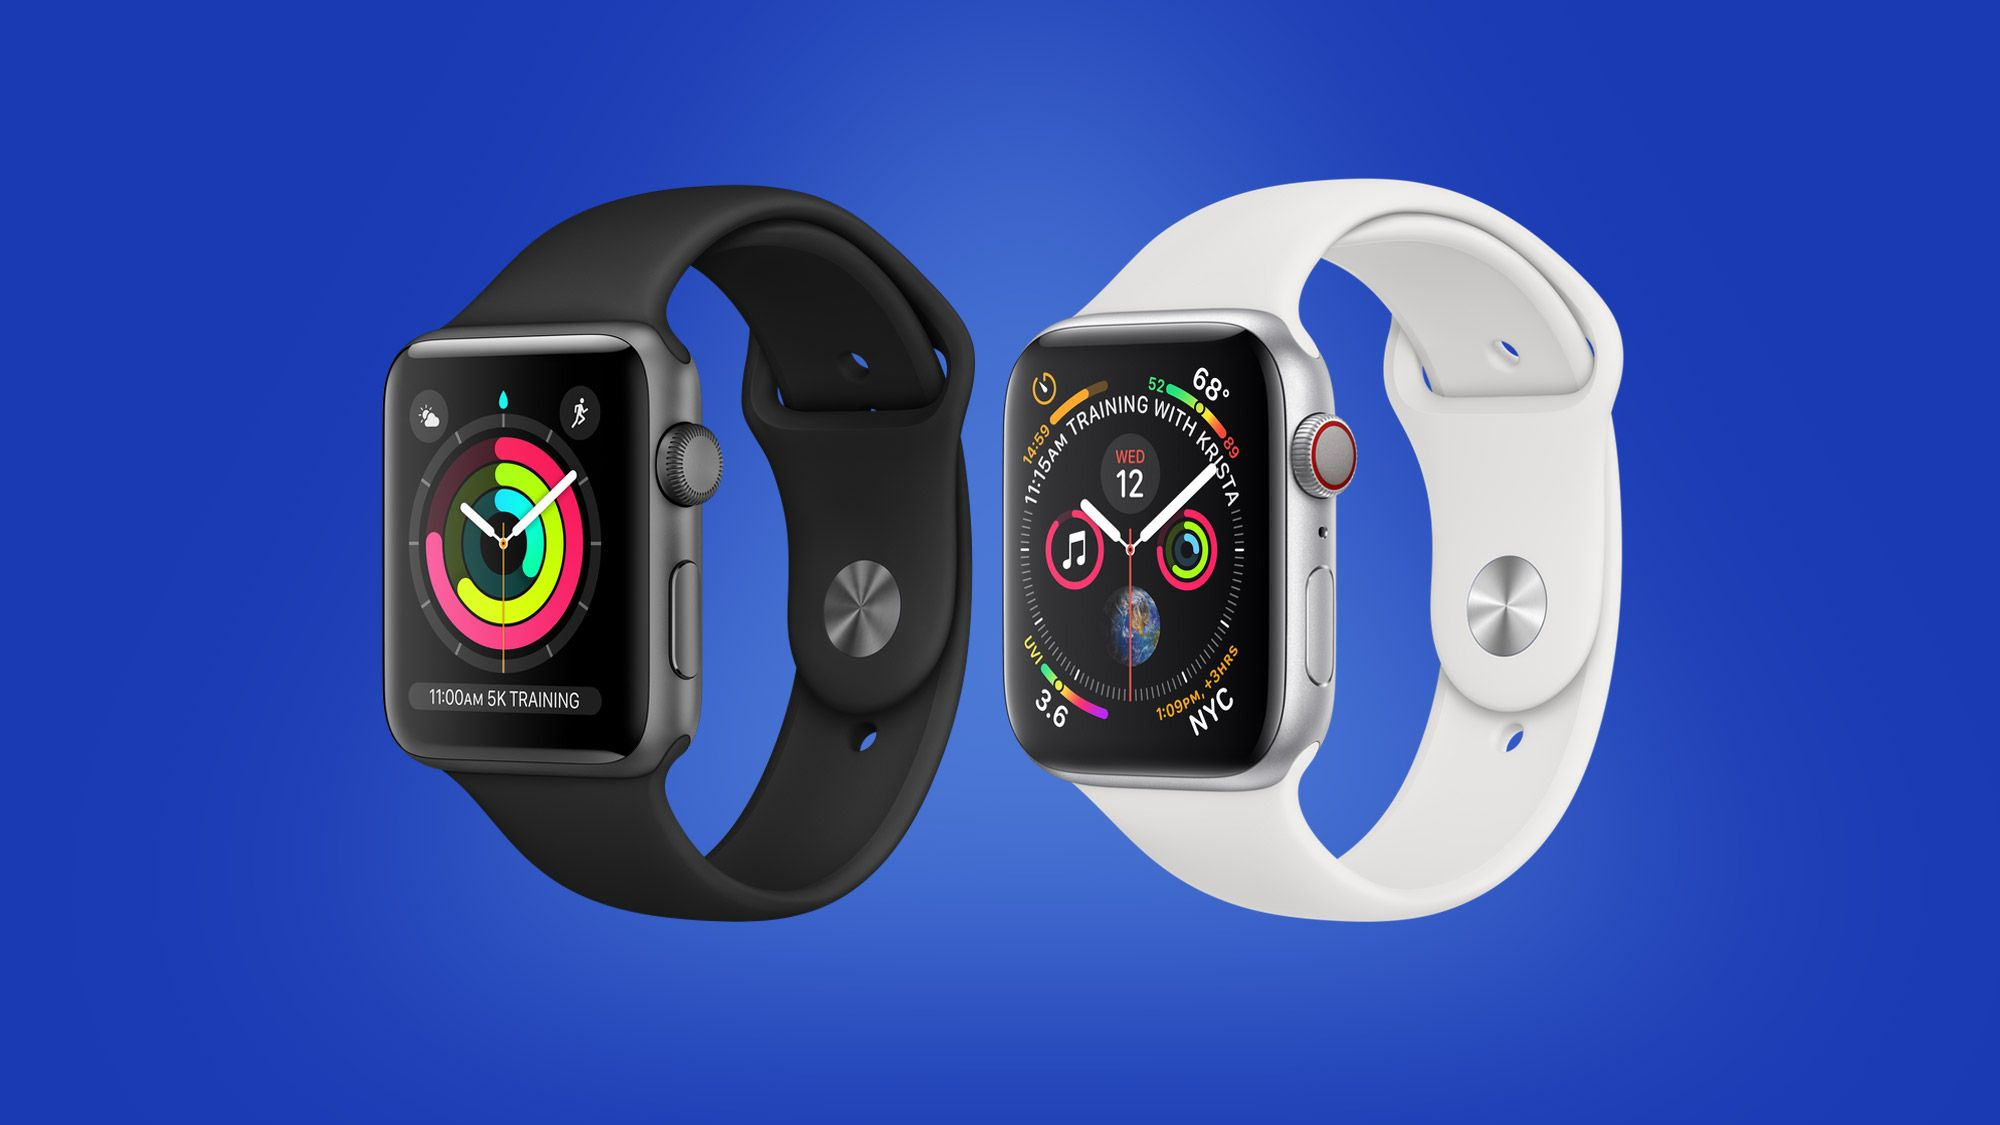 Apple Watch sale at Walmart preBlack Friday deals on the